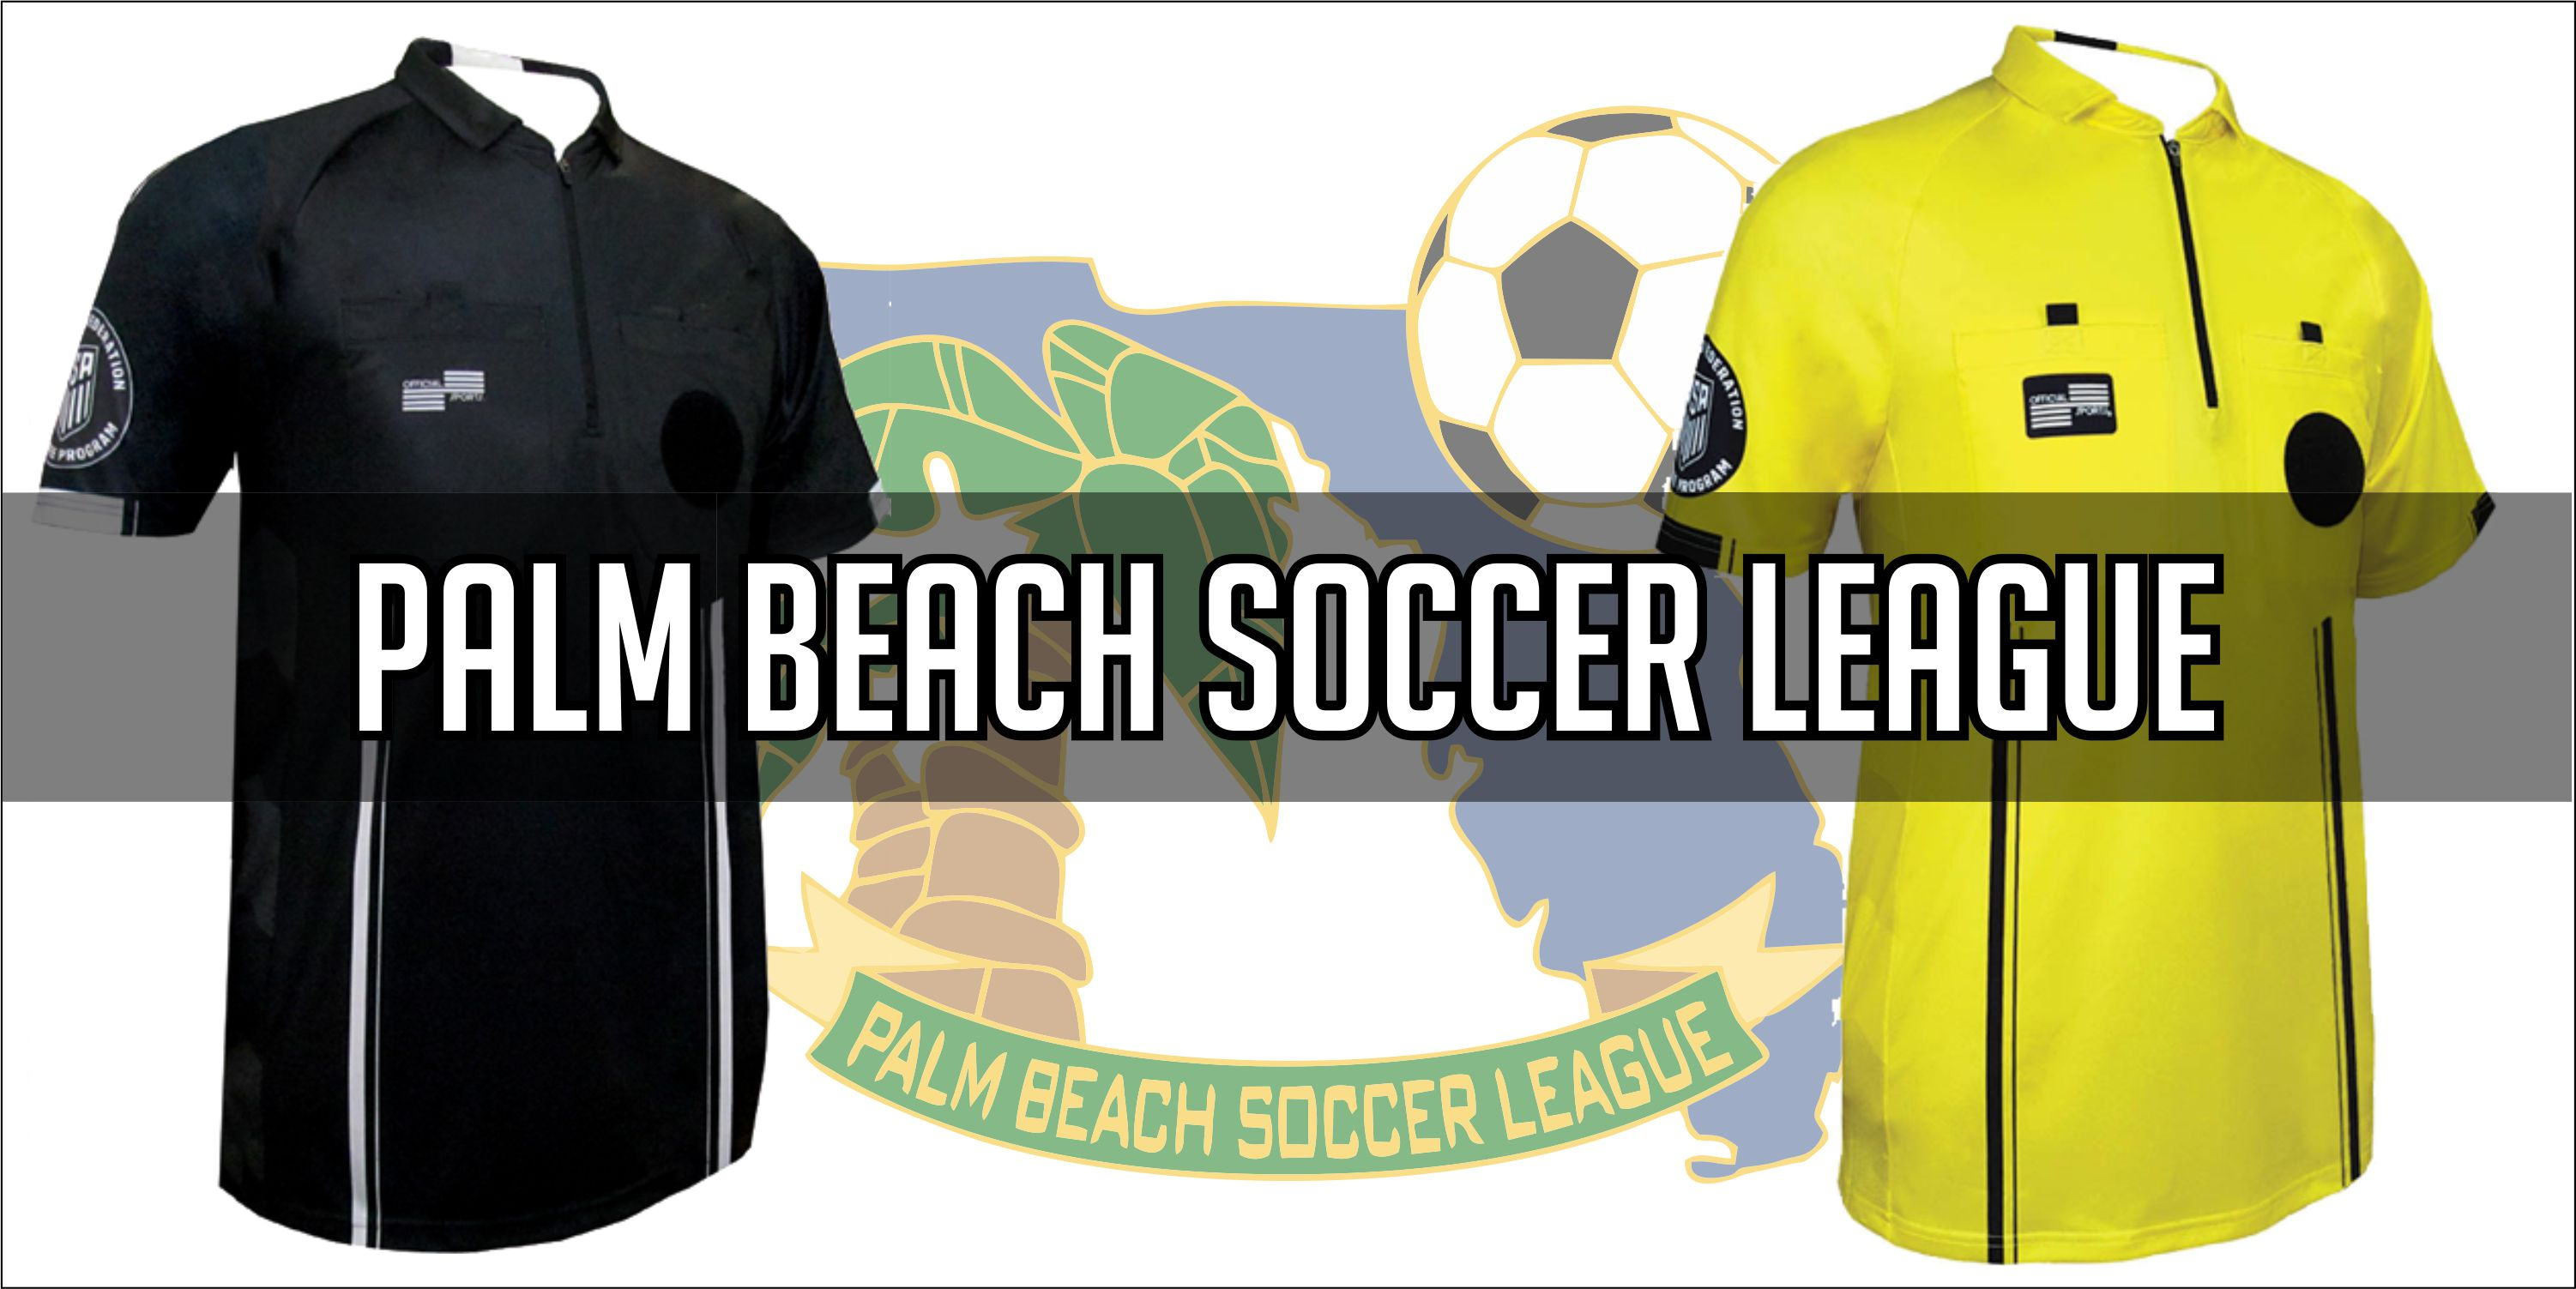 Palm Beach Soccer League